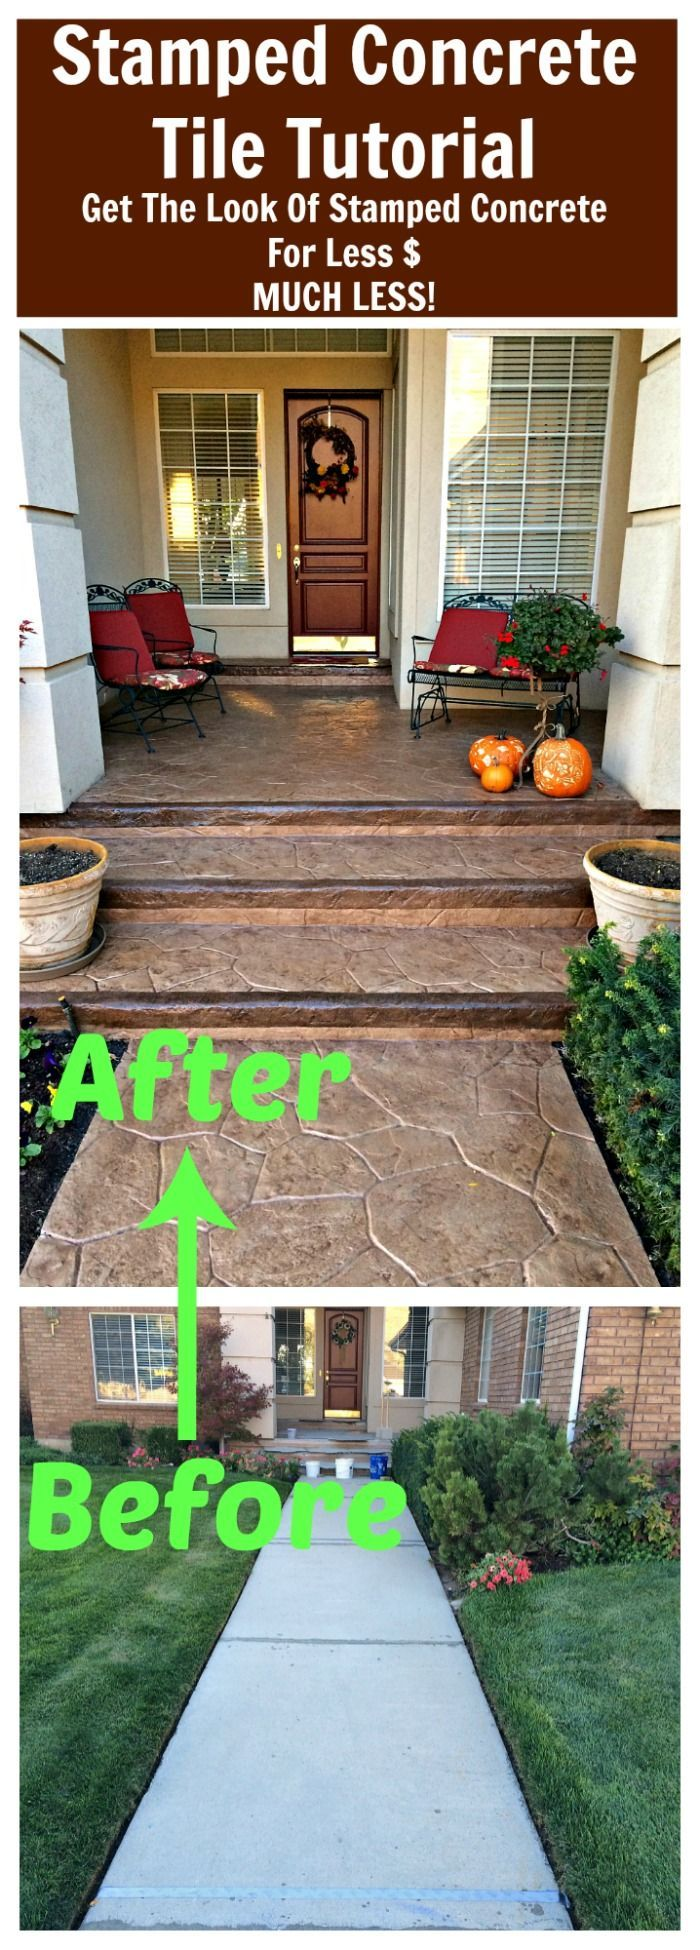 DIY STAMPED CONCRETE TILE TUTORIAL - Get the look of stamped concrete for less…